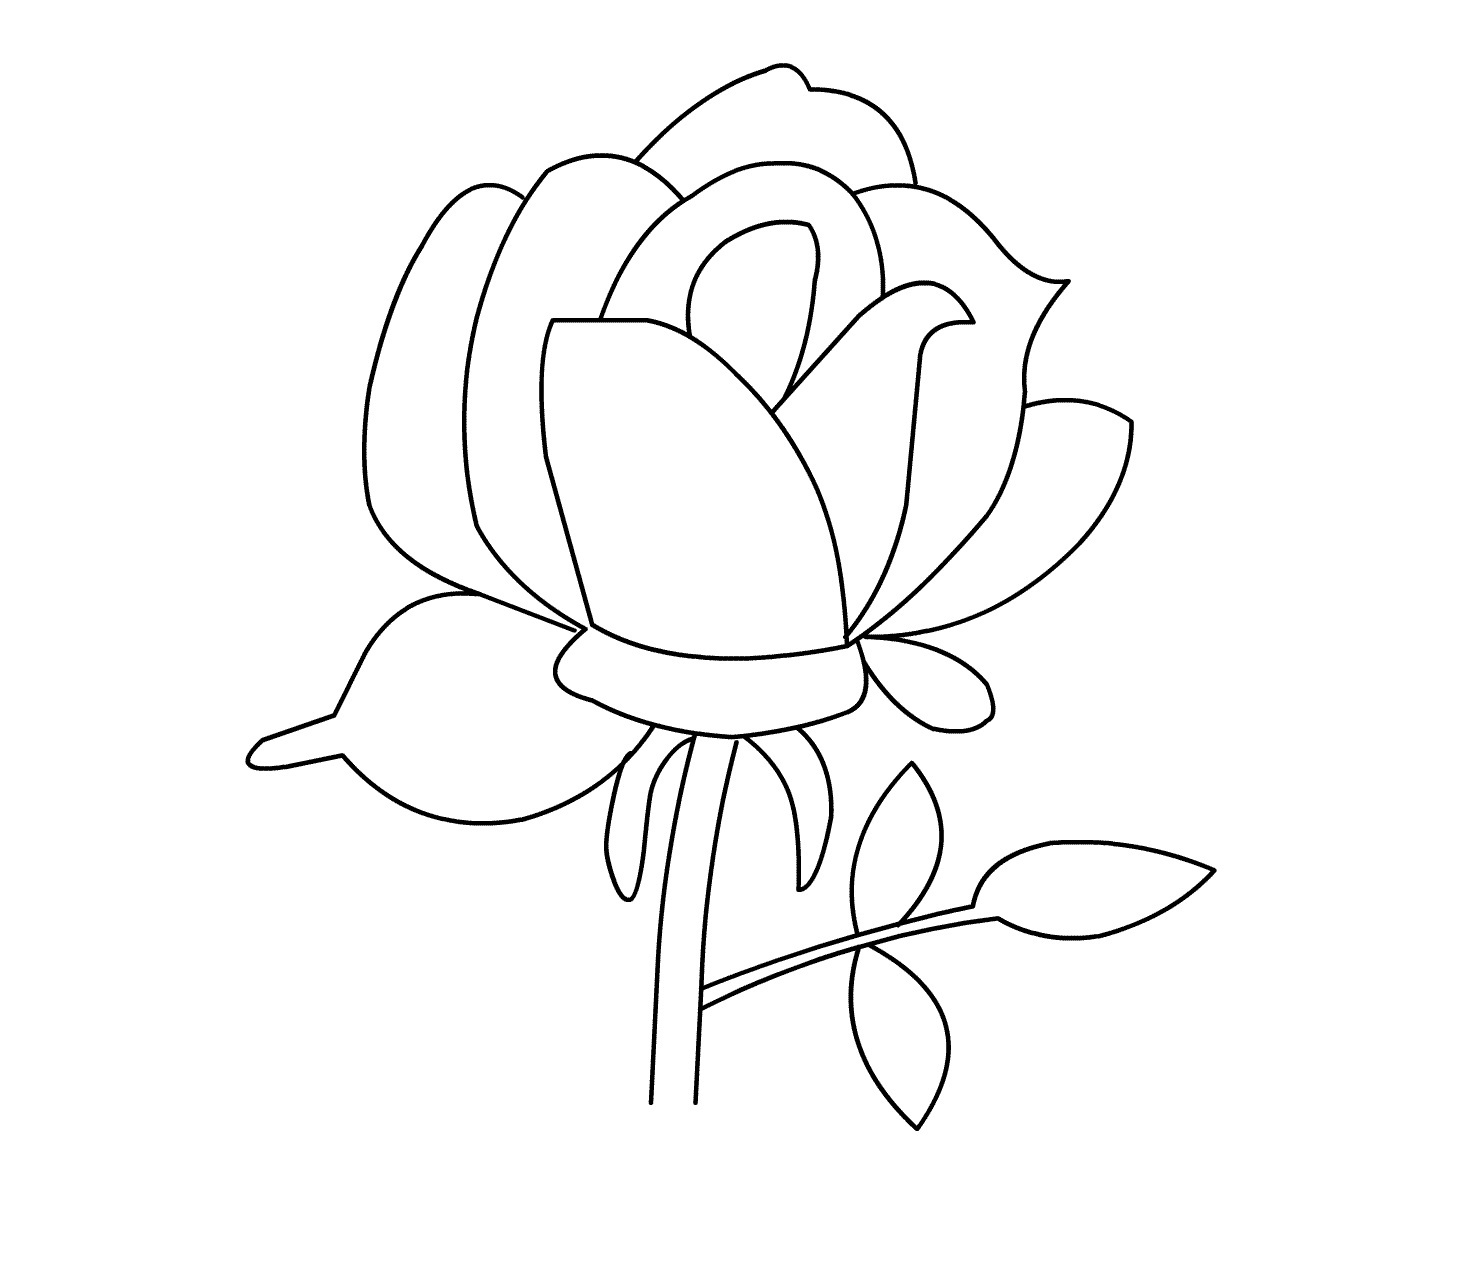 rose coloring pages for kids - photo#34